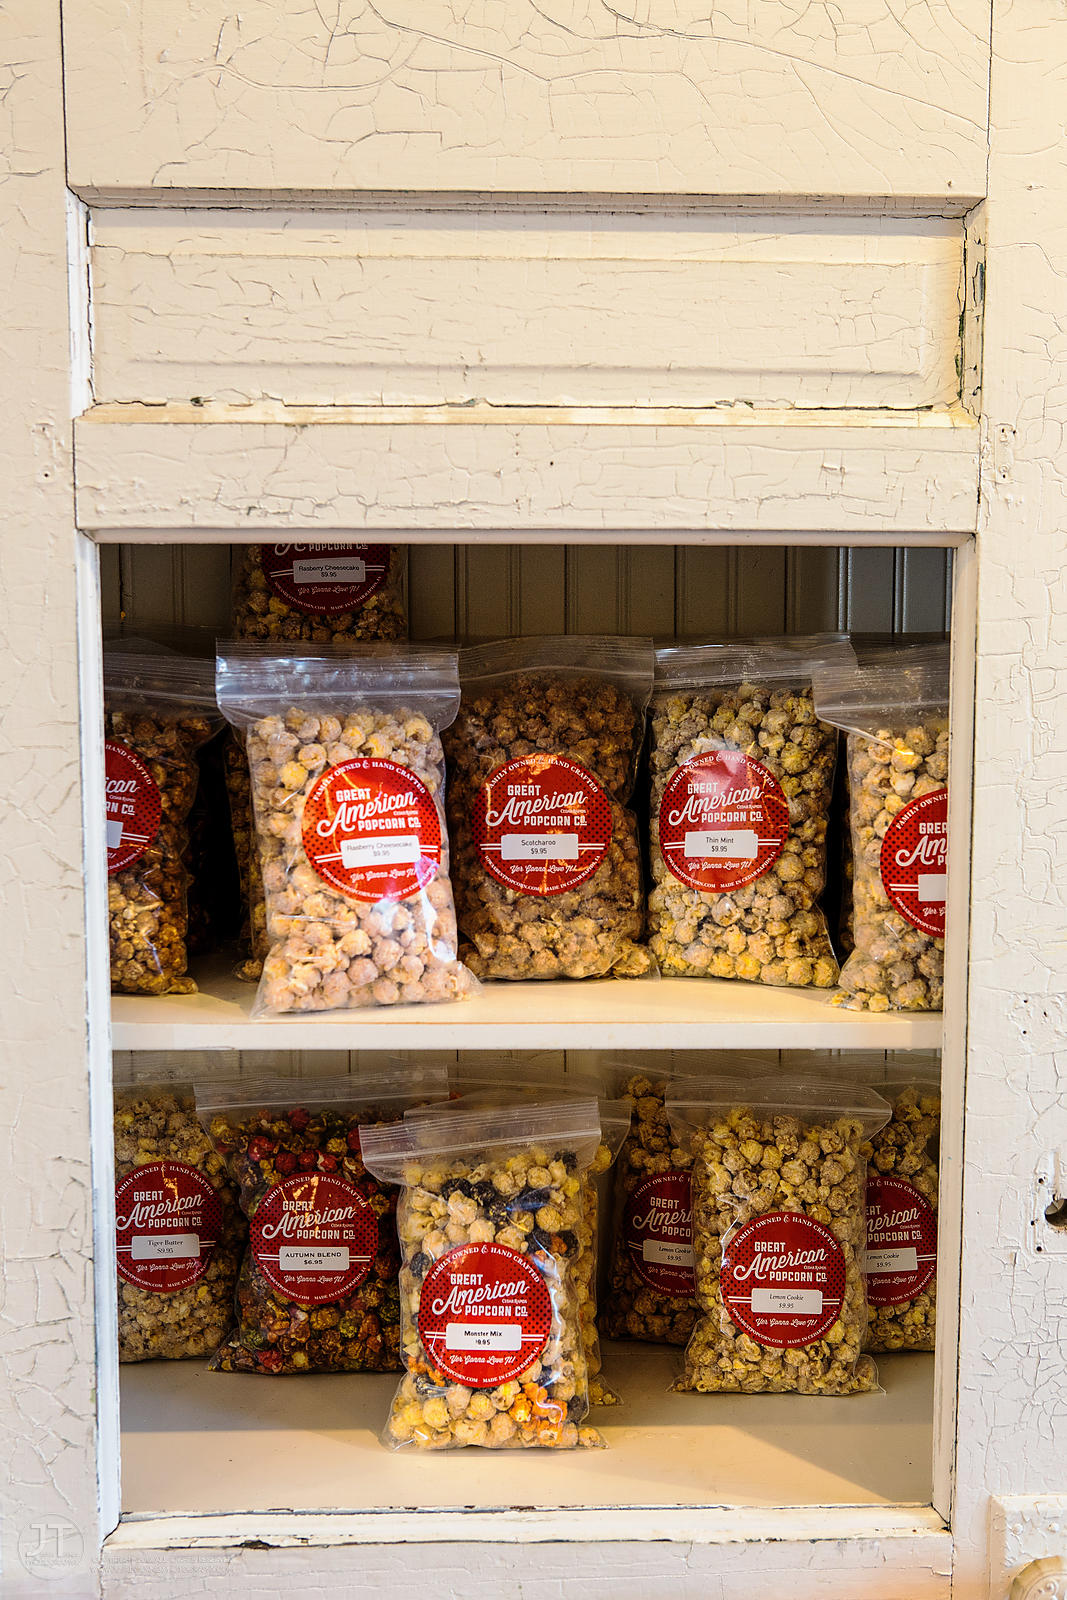 Great American Popcorn Co